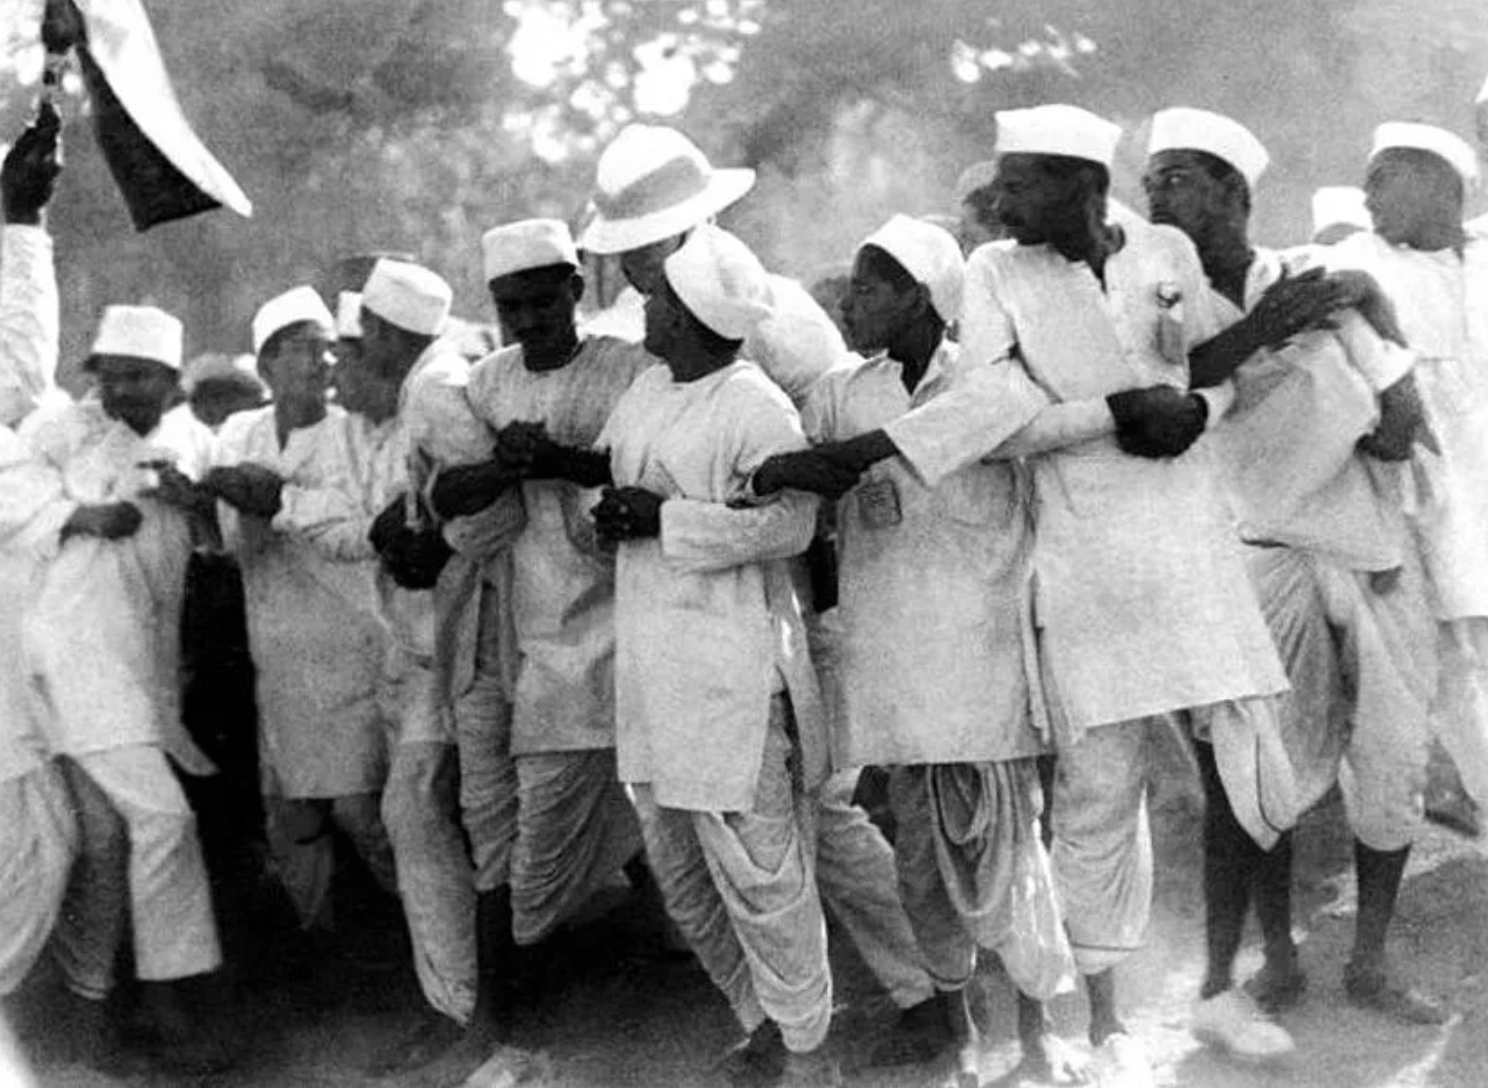 Indian men dressed in kurtas to protest for their right to practice Swadeshi in the 1940s. Kurtas were worn only by men until around 200 years ago. (National Gandhi Museum, New Delhi)